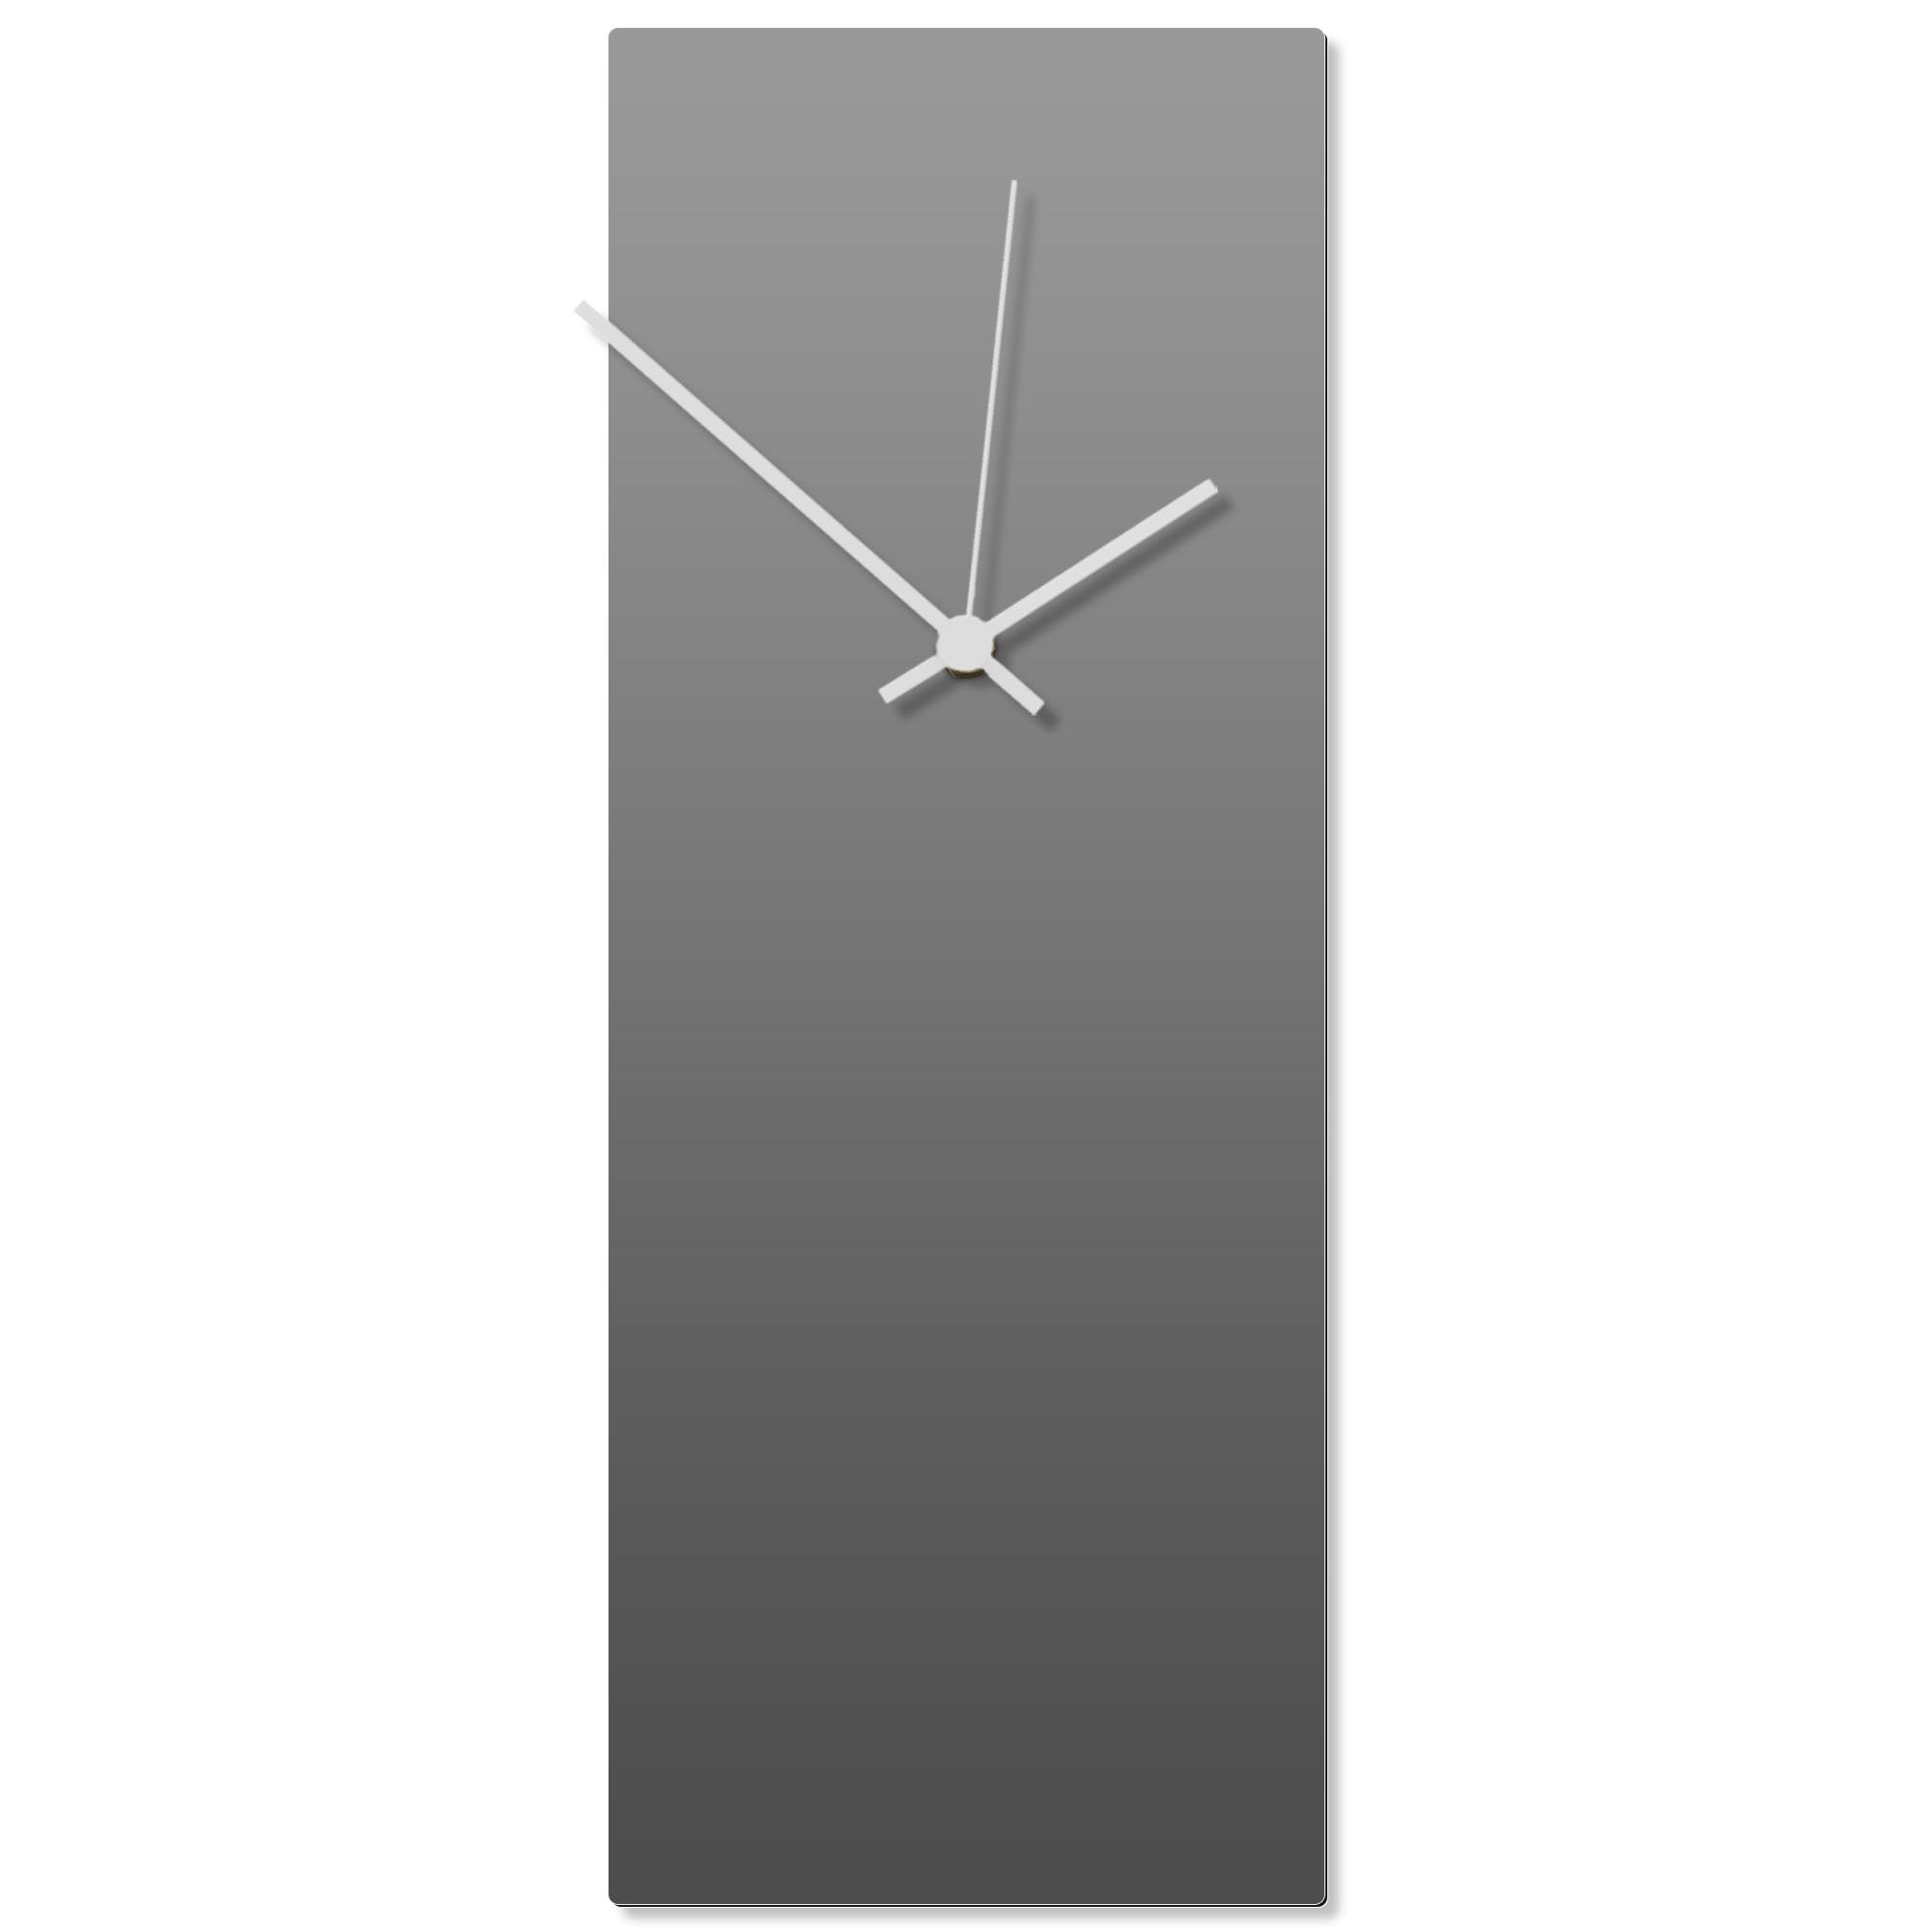 Grayout White Clock Large 8.25x22in. Aluminum Polymetal